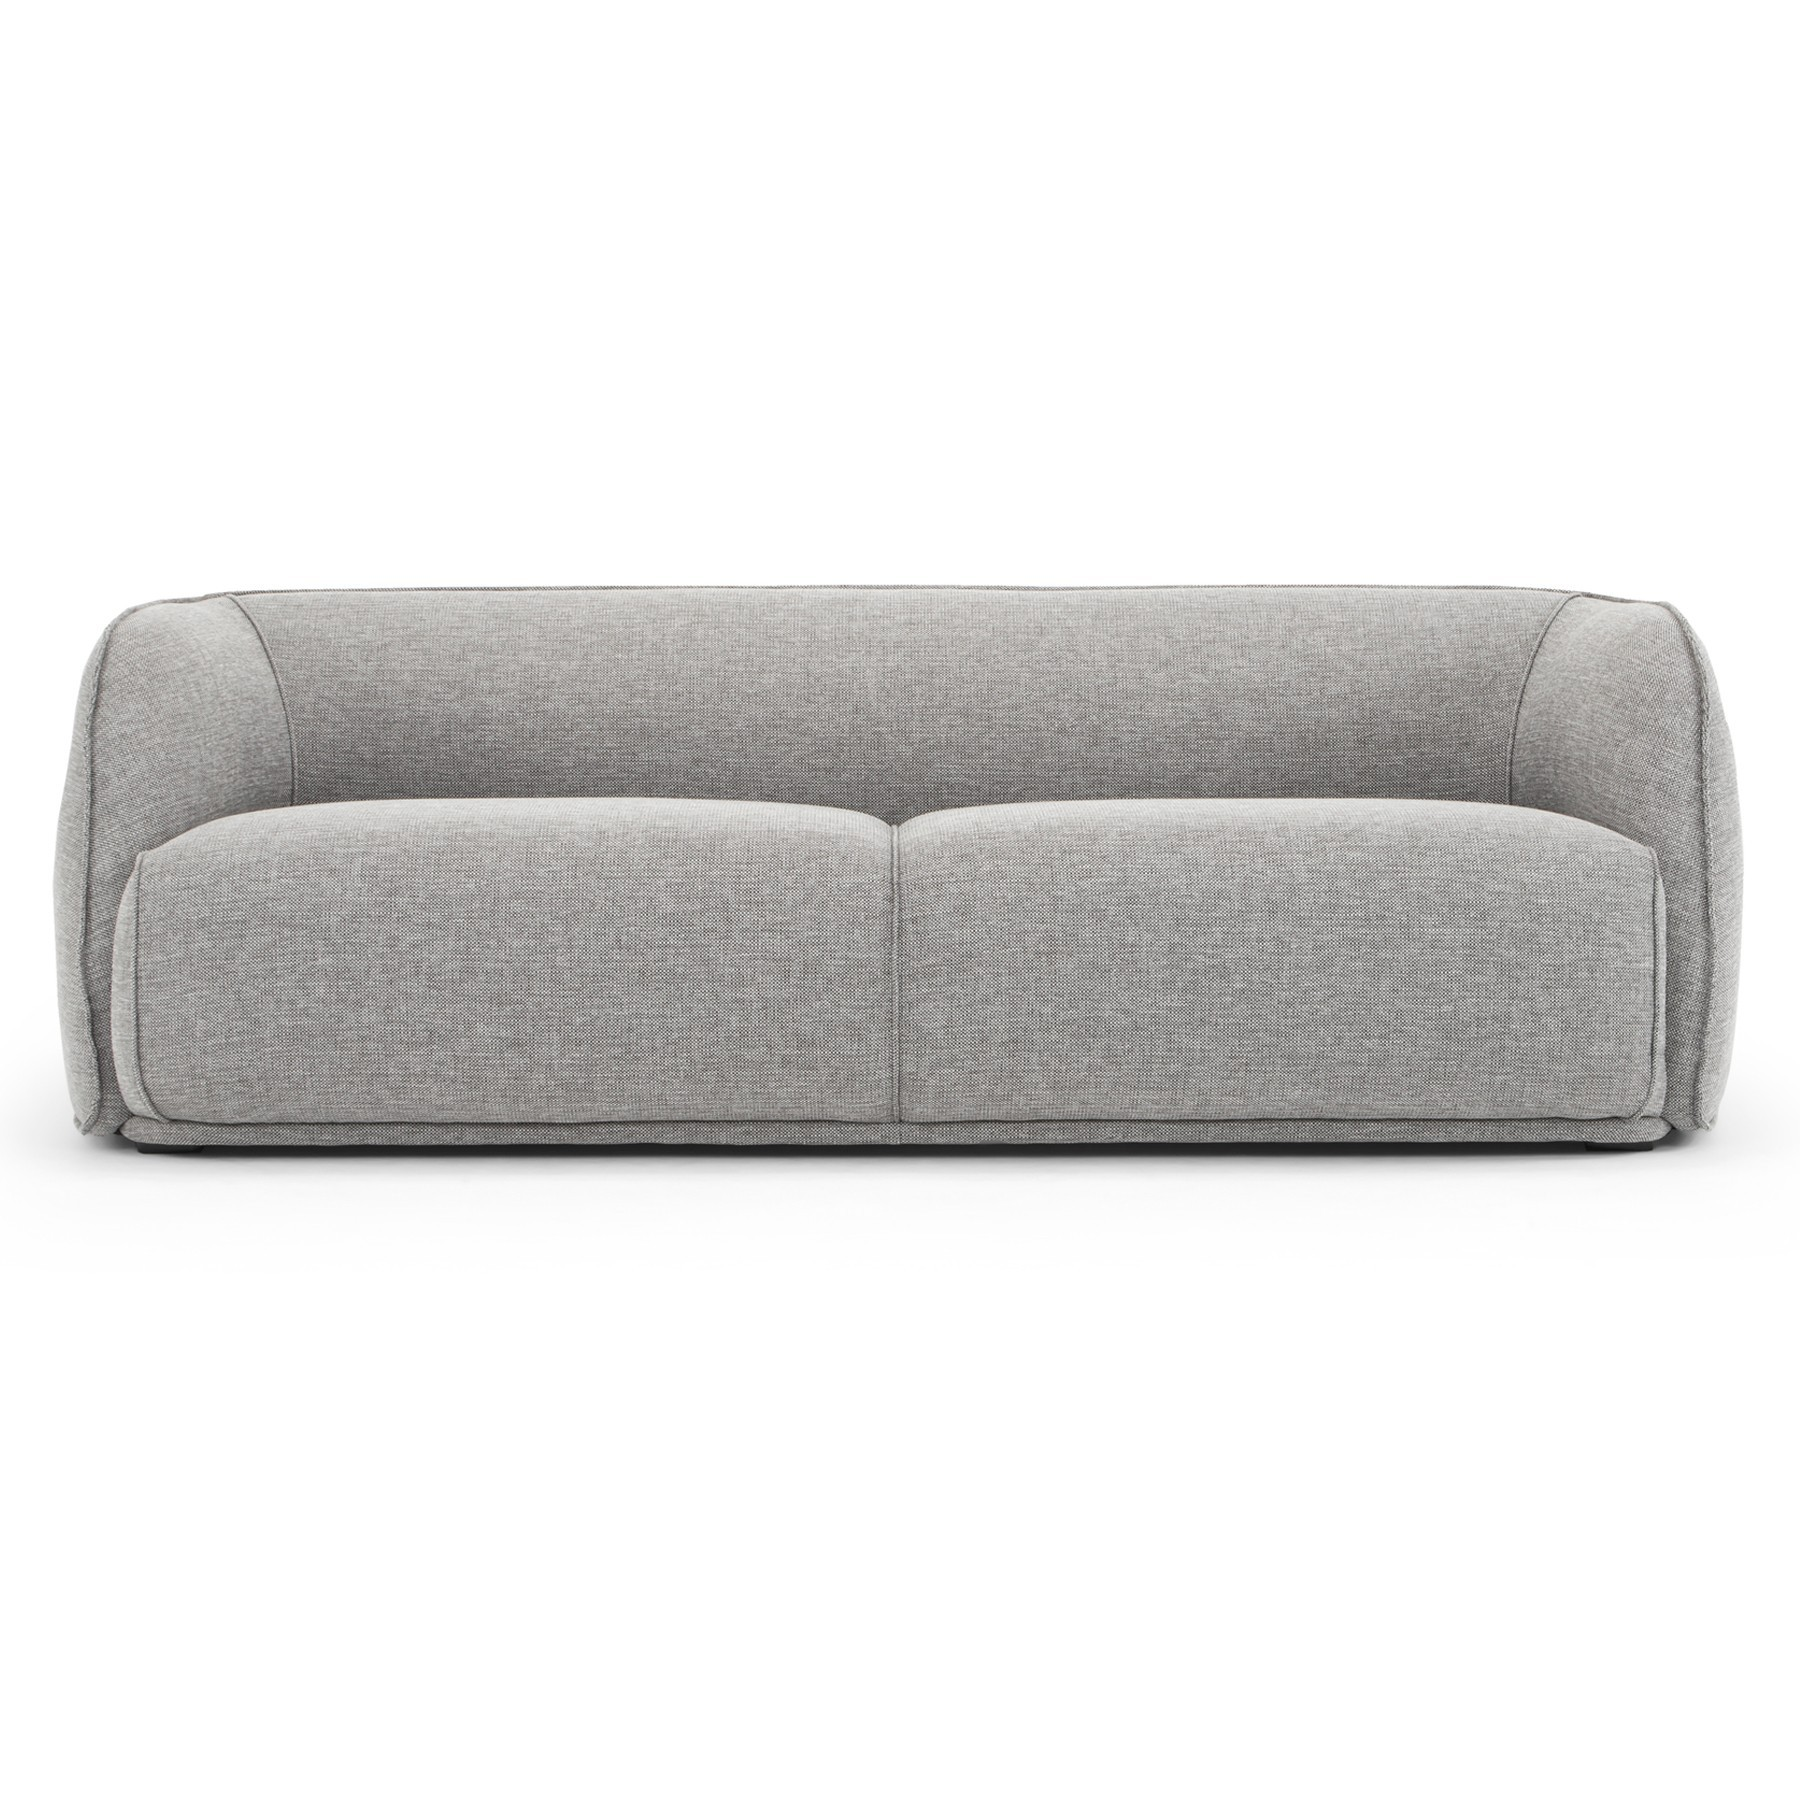 Havero Fabric Sofa, 3 Seater, Grey